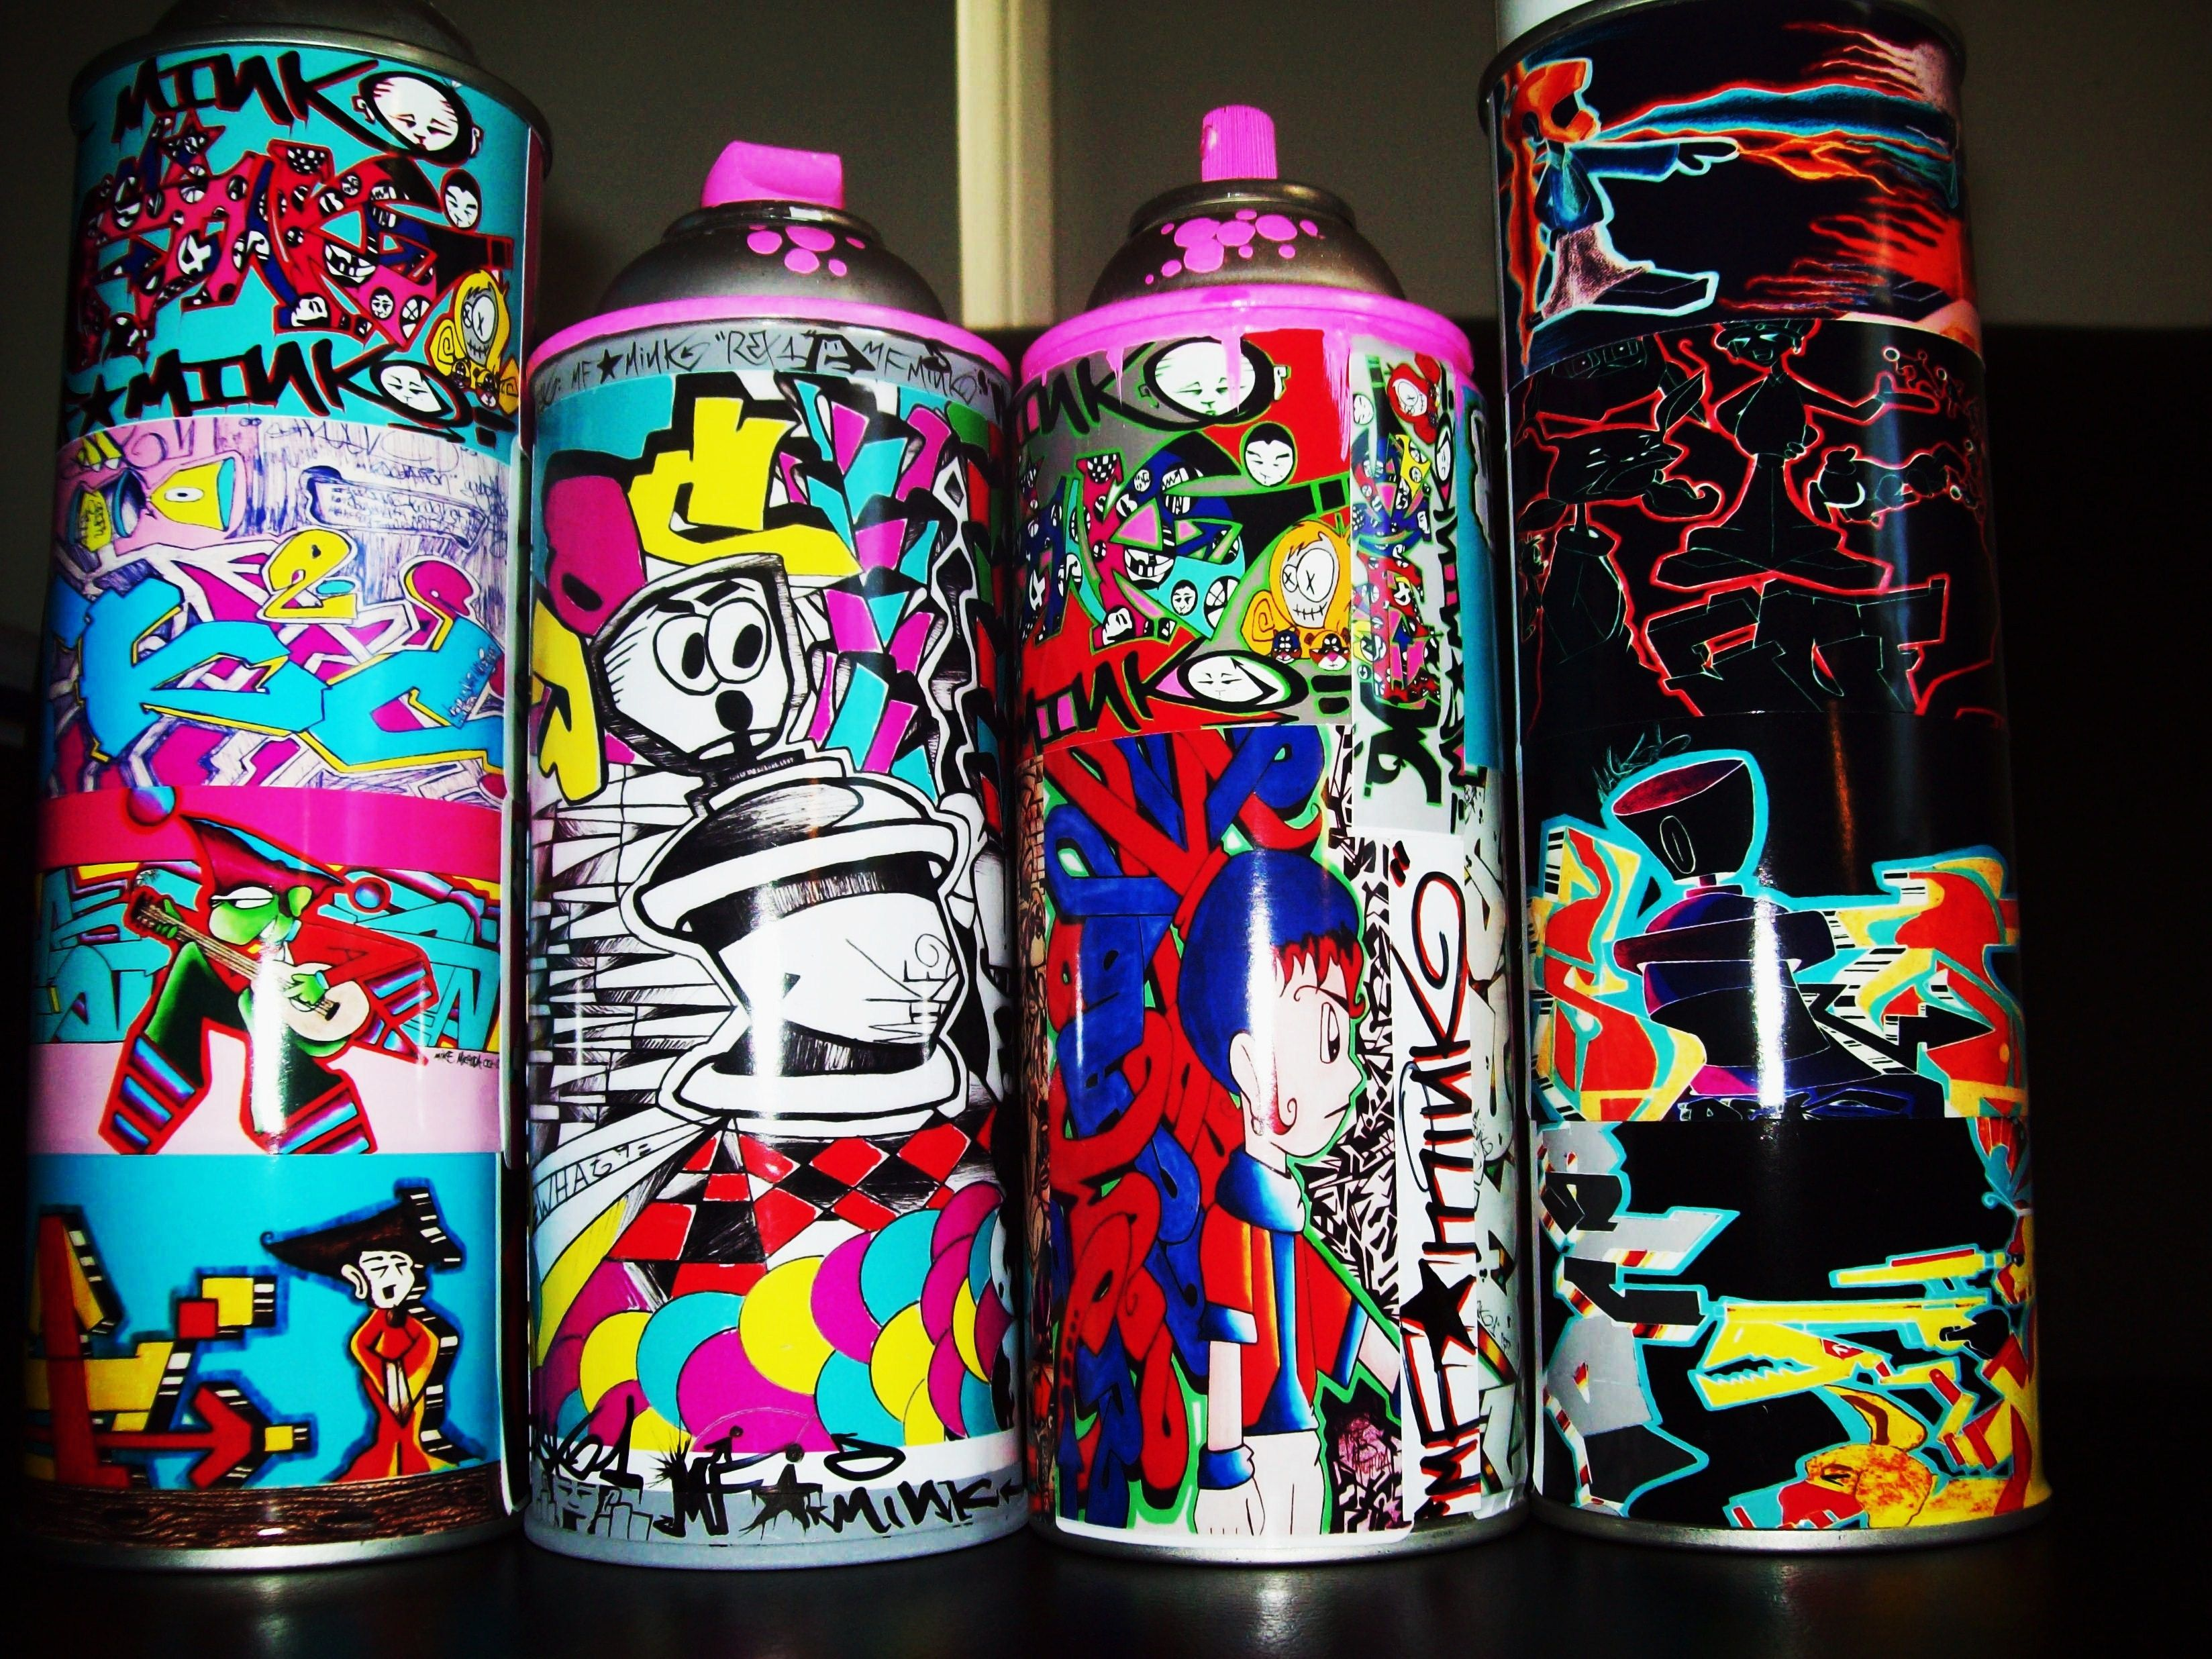 I Made These Out Of Old Empty Spray Paint Cans I Put A Few Coats Of Clear High Gloss On Them To